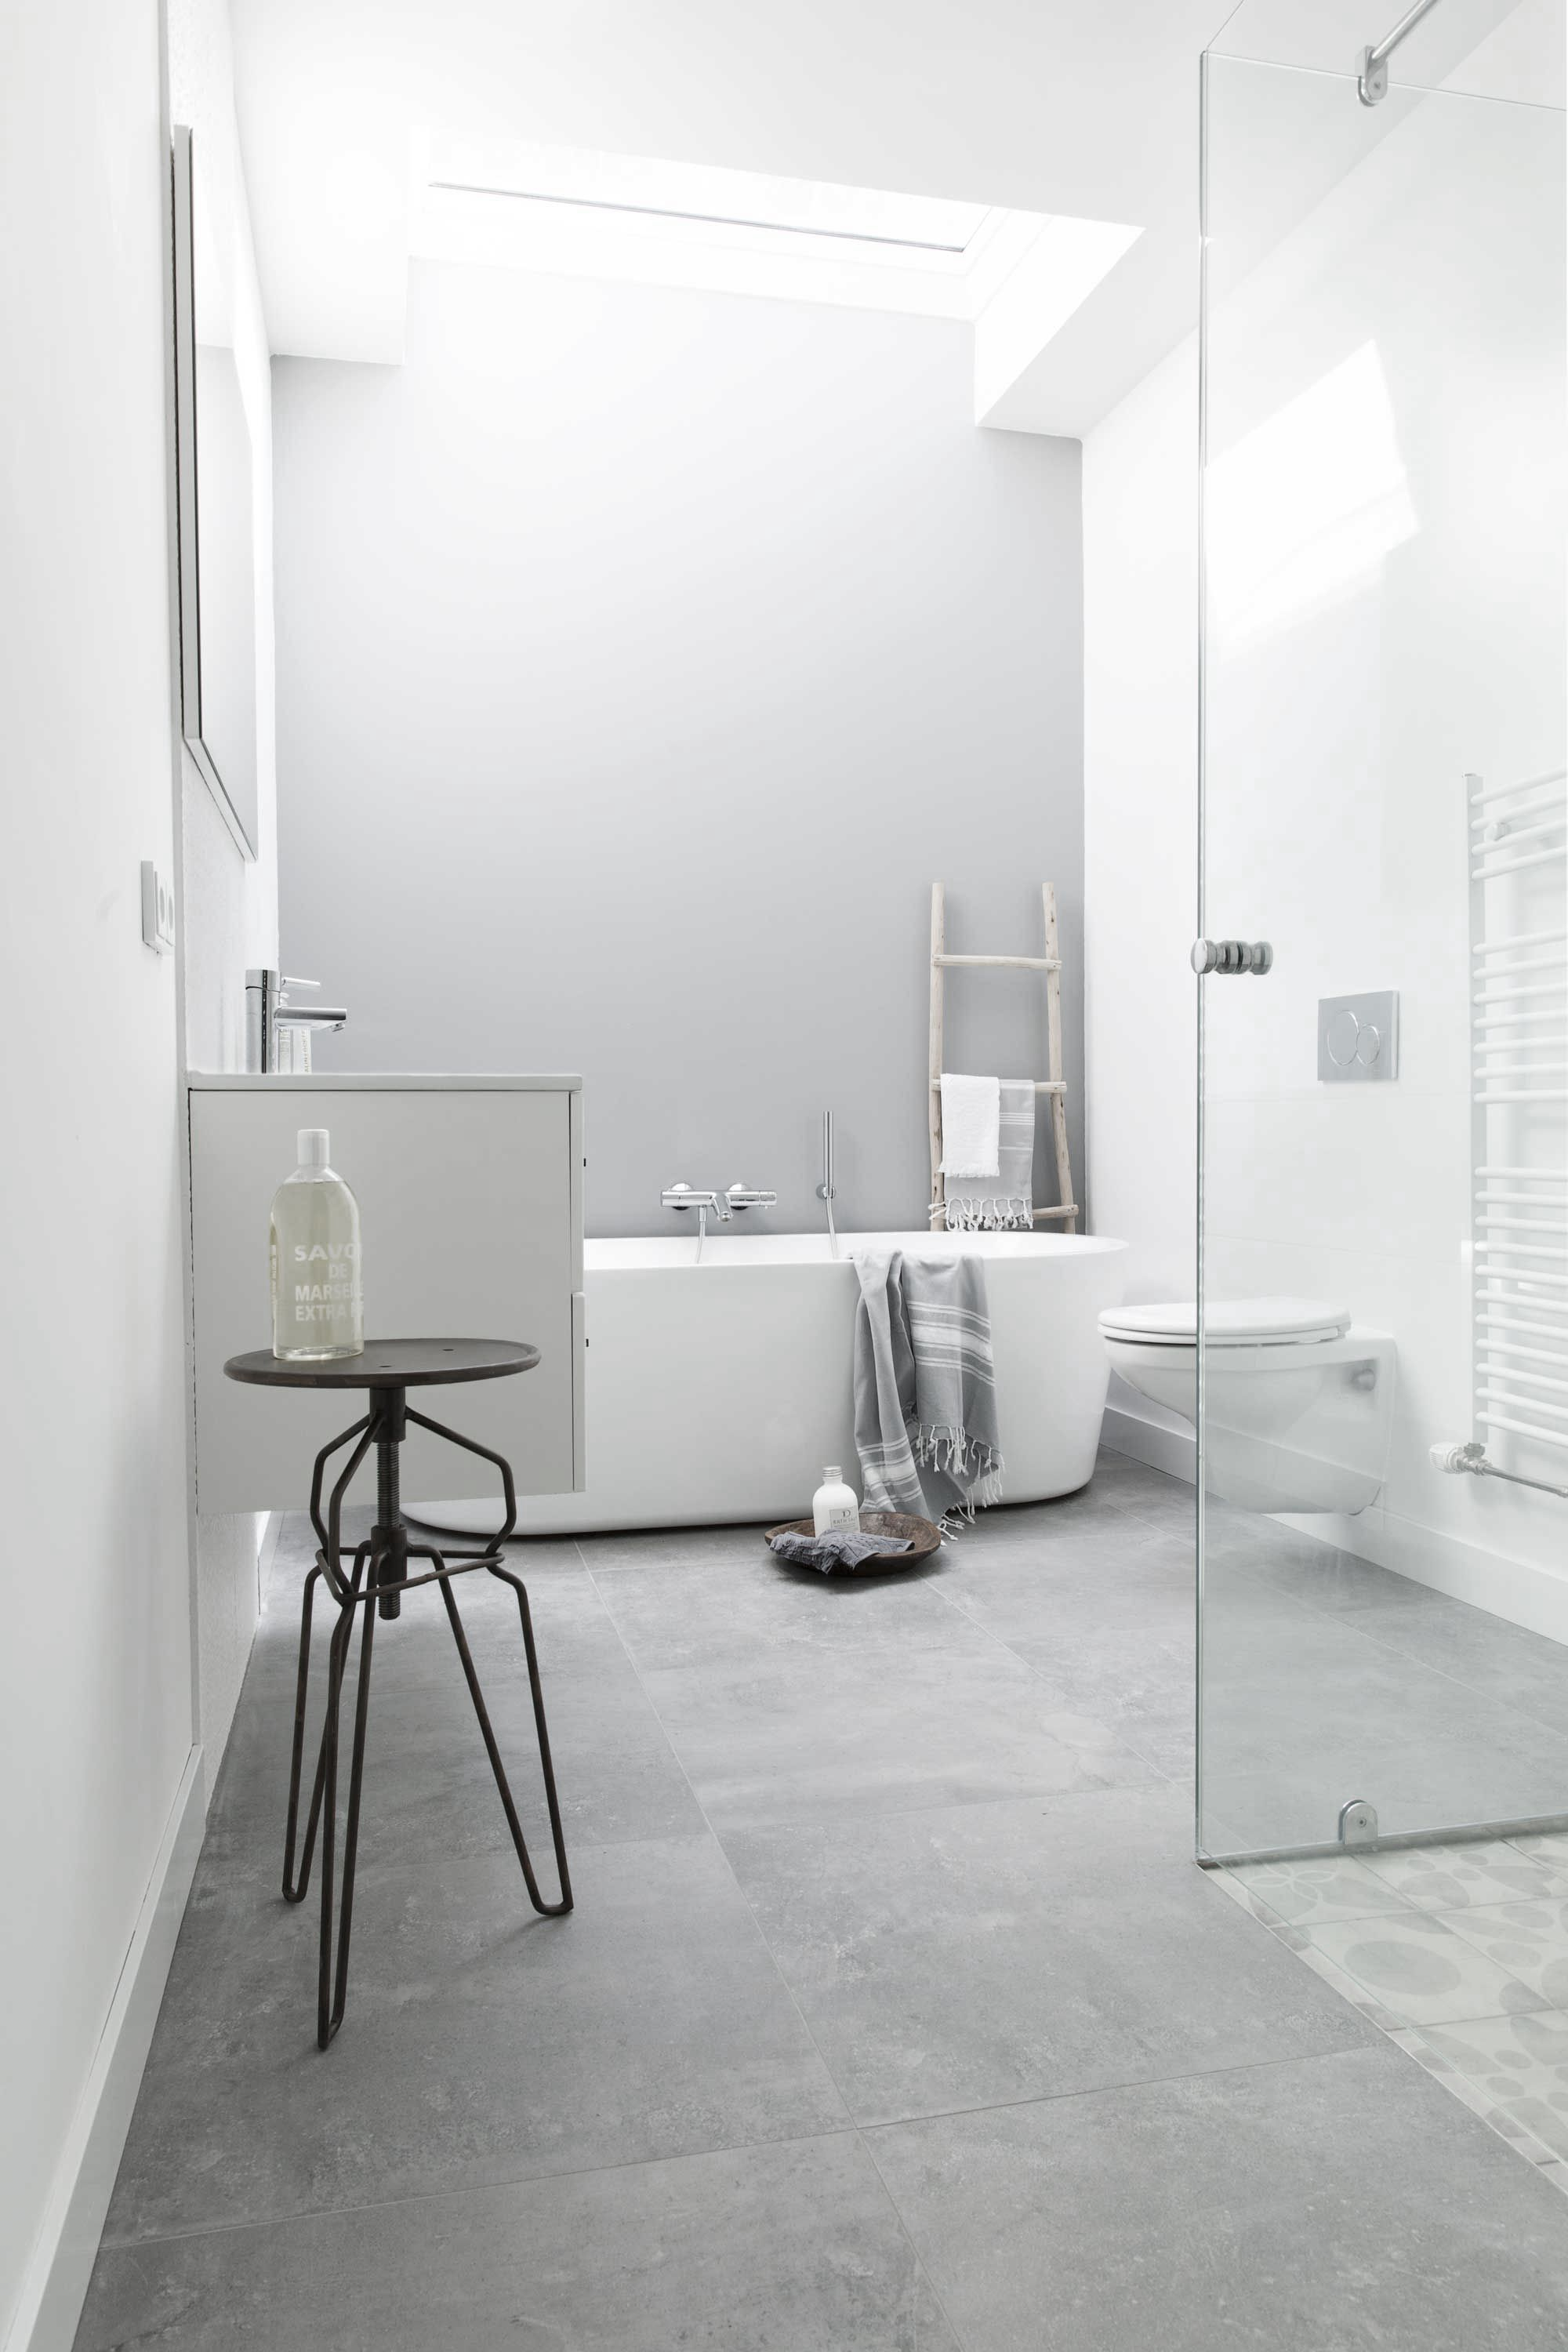 Oberlicht ja ansonsten ist das bad ohne worte keine badrum vt wonen this is a gorgeous bathroom but i wouldve chosen a different sink its too much of a block and takes up an odd visual space dailygadgetfo Choice Image